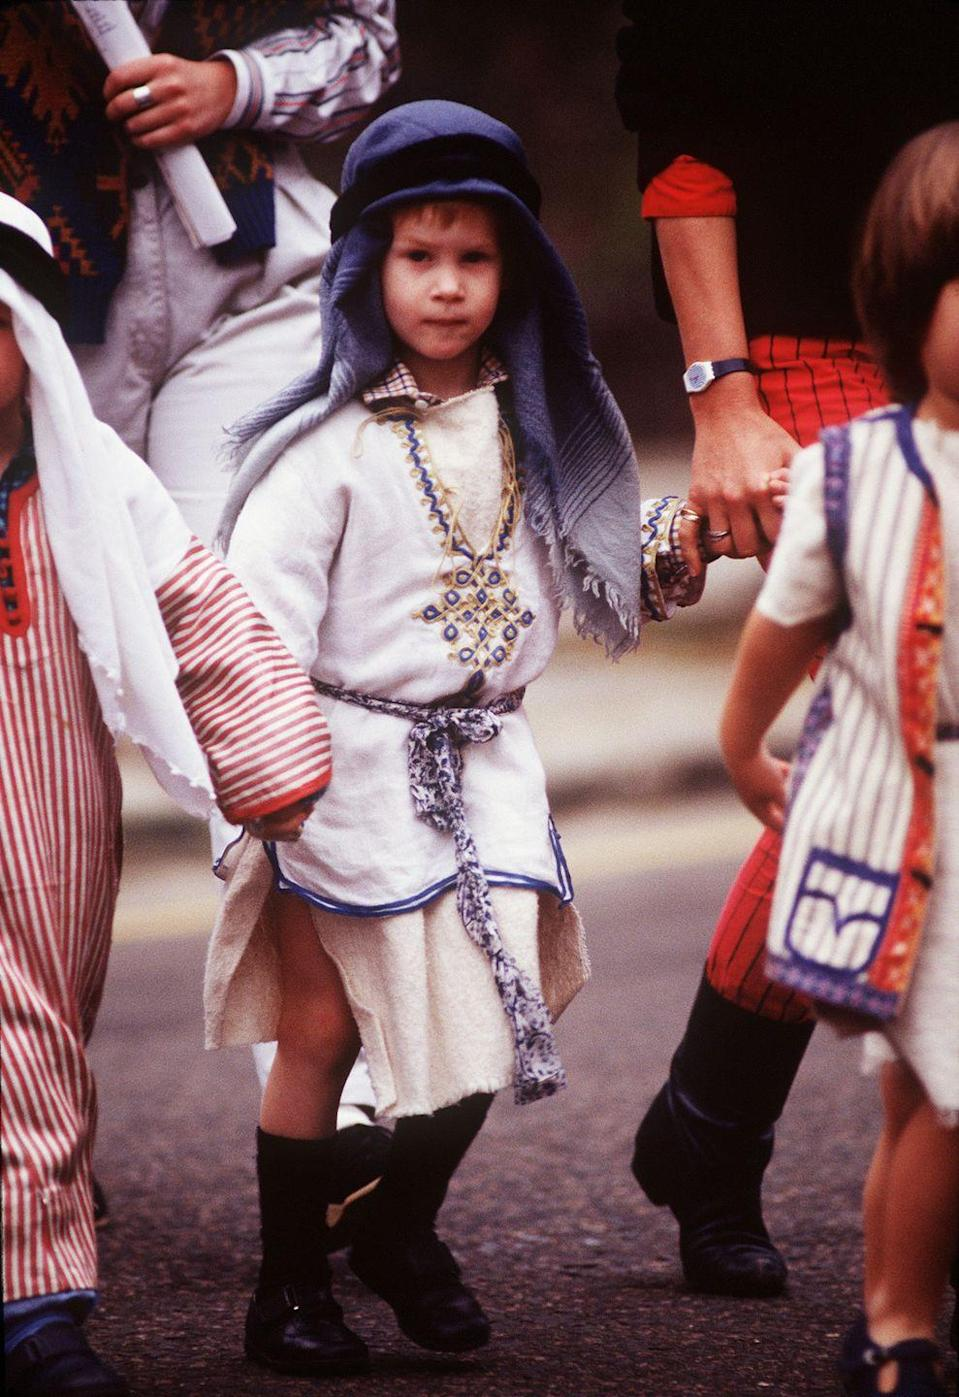 <p>Prince Harry may take the cake as the most festive holiday dresser ever. In 1988, he wore a full shepherds costume to participate in the Christmas nativity play at his nursery school. </p>